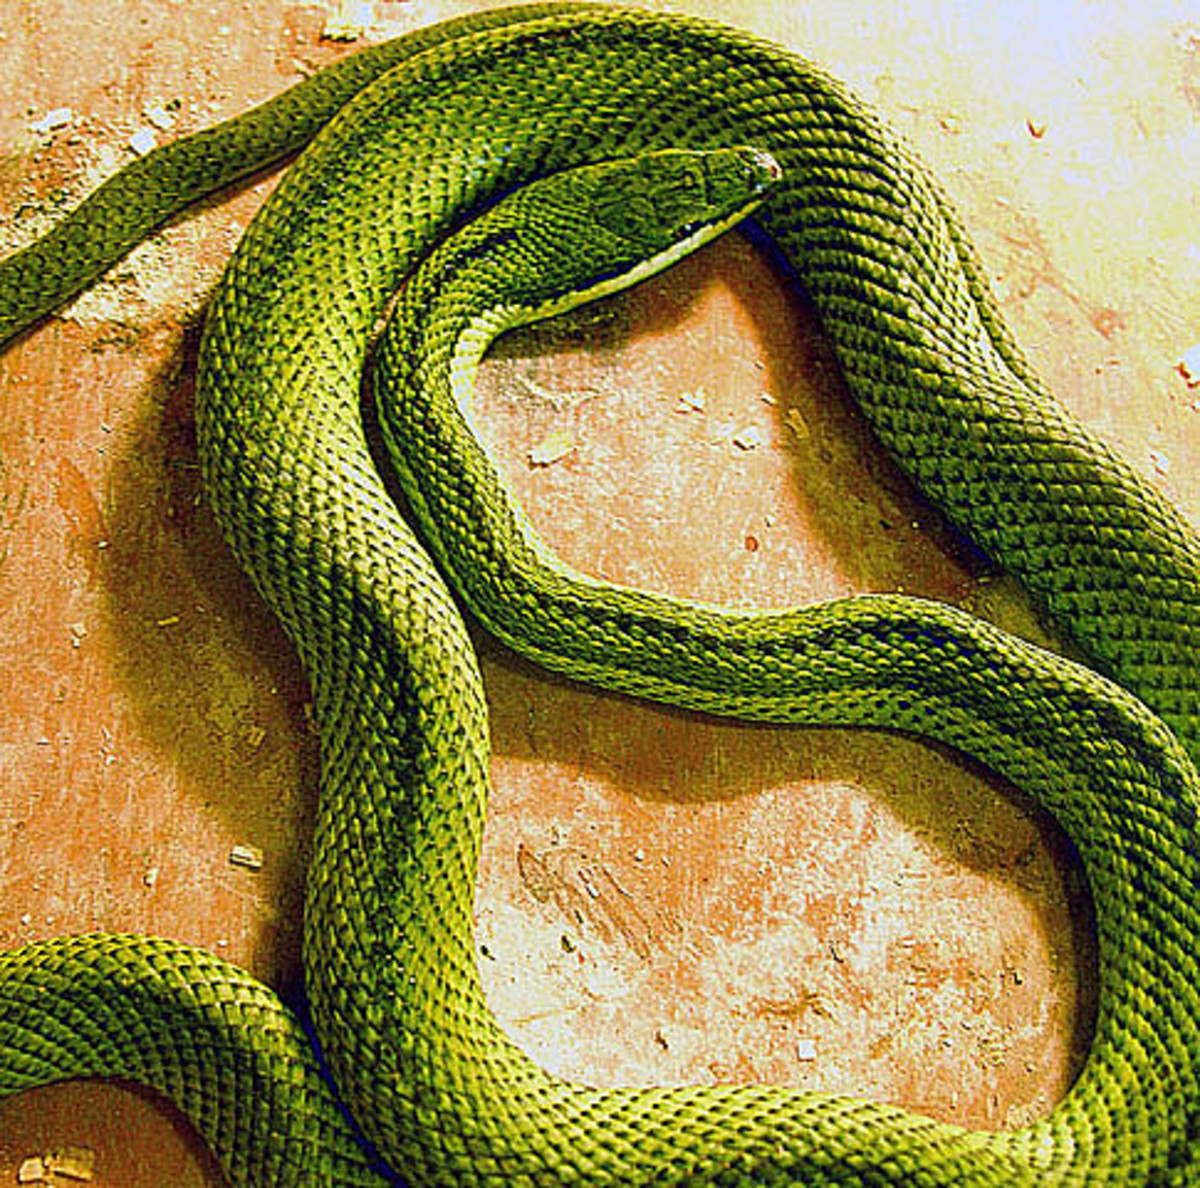 Hognose snakes rarely bite, but there are some bite incidents where edema, redness, blister formation, and cellulitis were reported.